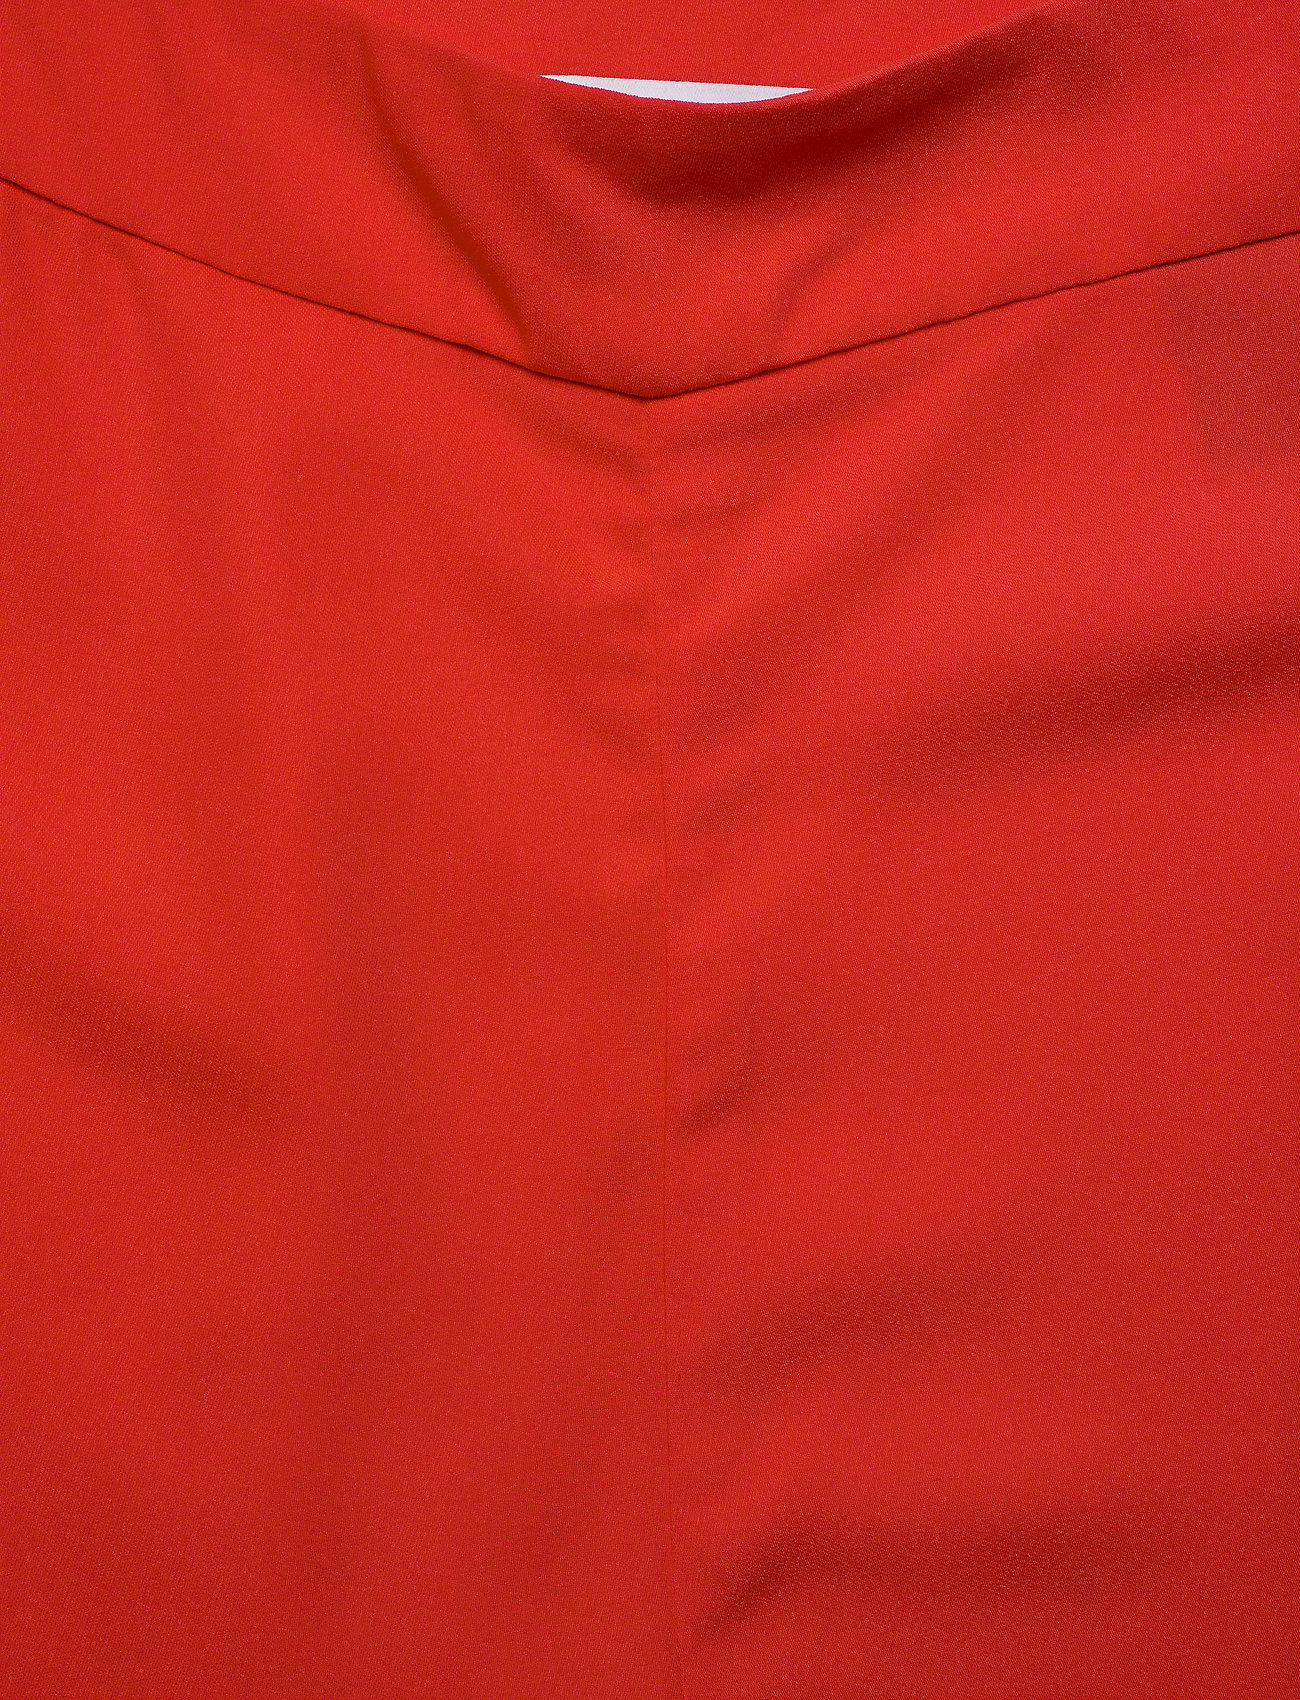 Vacation Trouser (Bright Red) (1169.35 kr) - Camilla Pihl